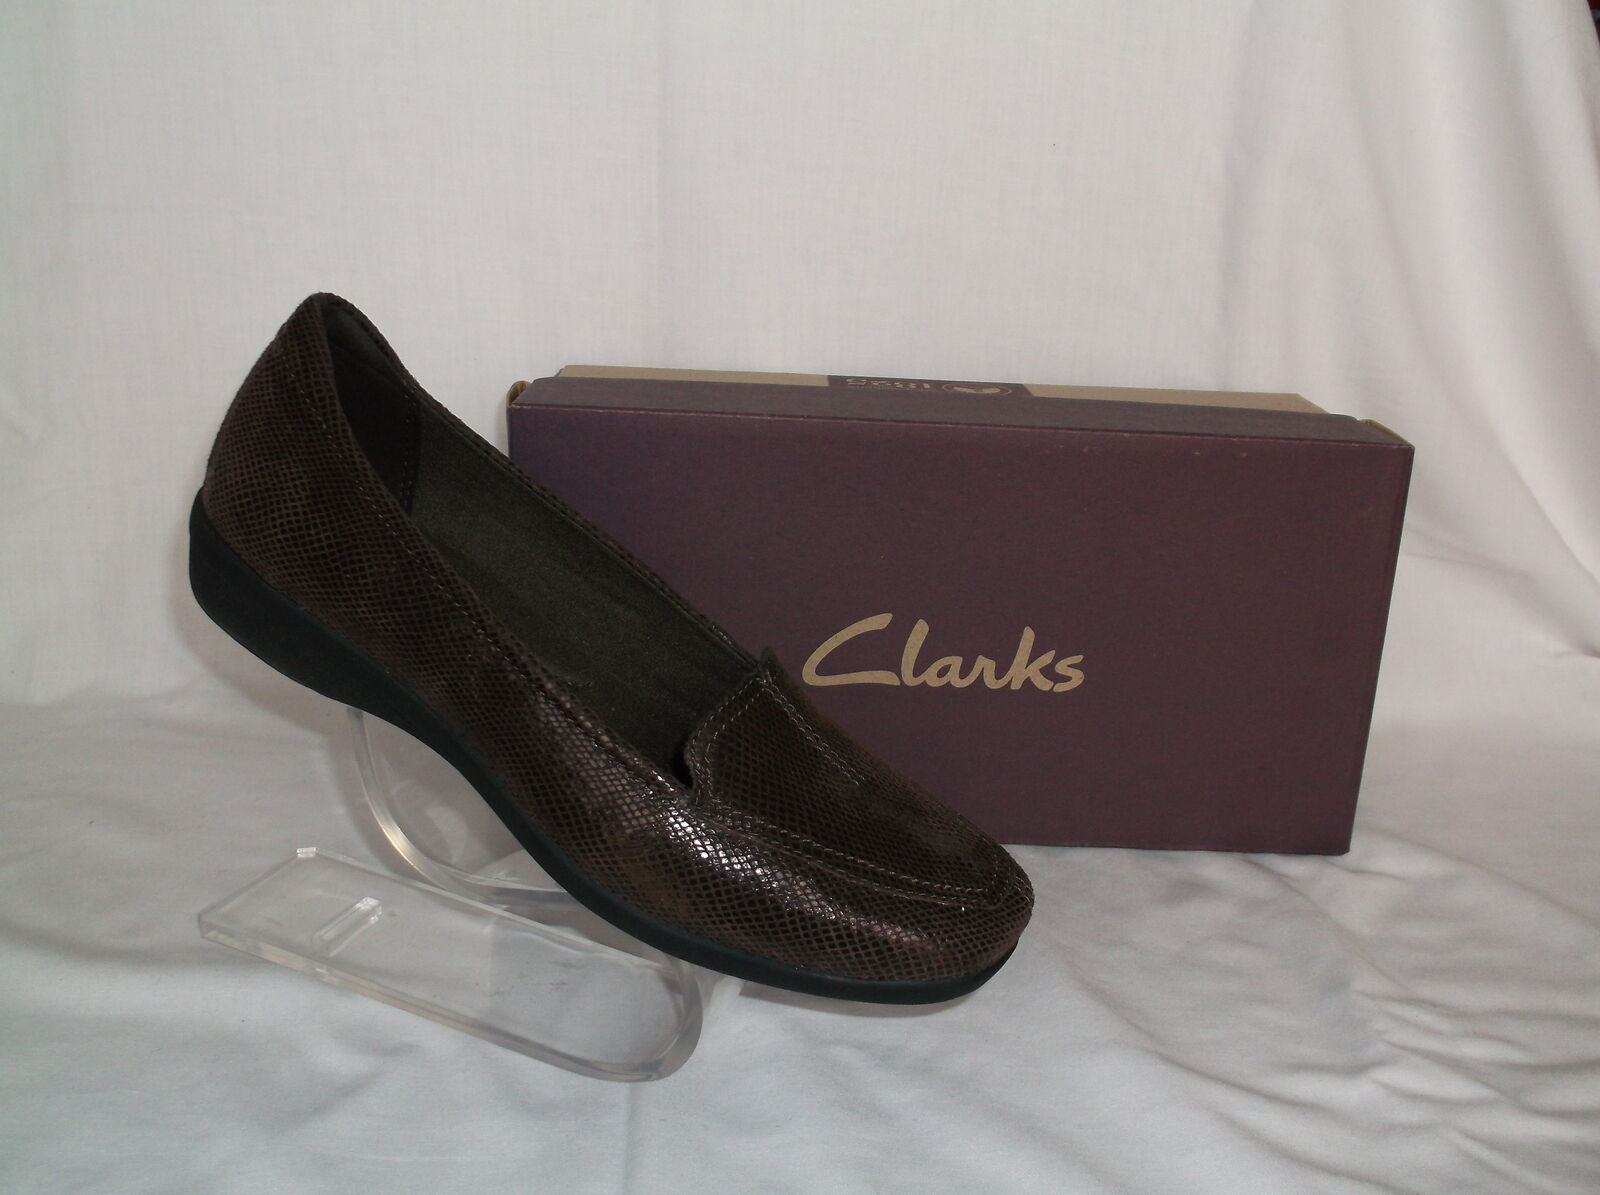 CLARKS LEATHER LIZZARD BROWN LOAFER NEU IN BOX